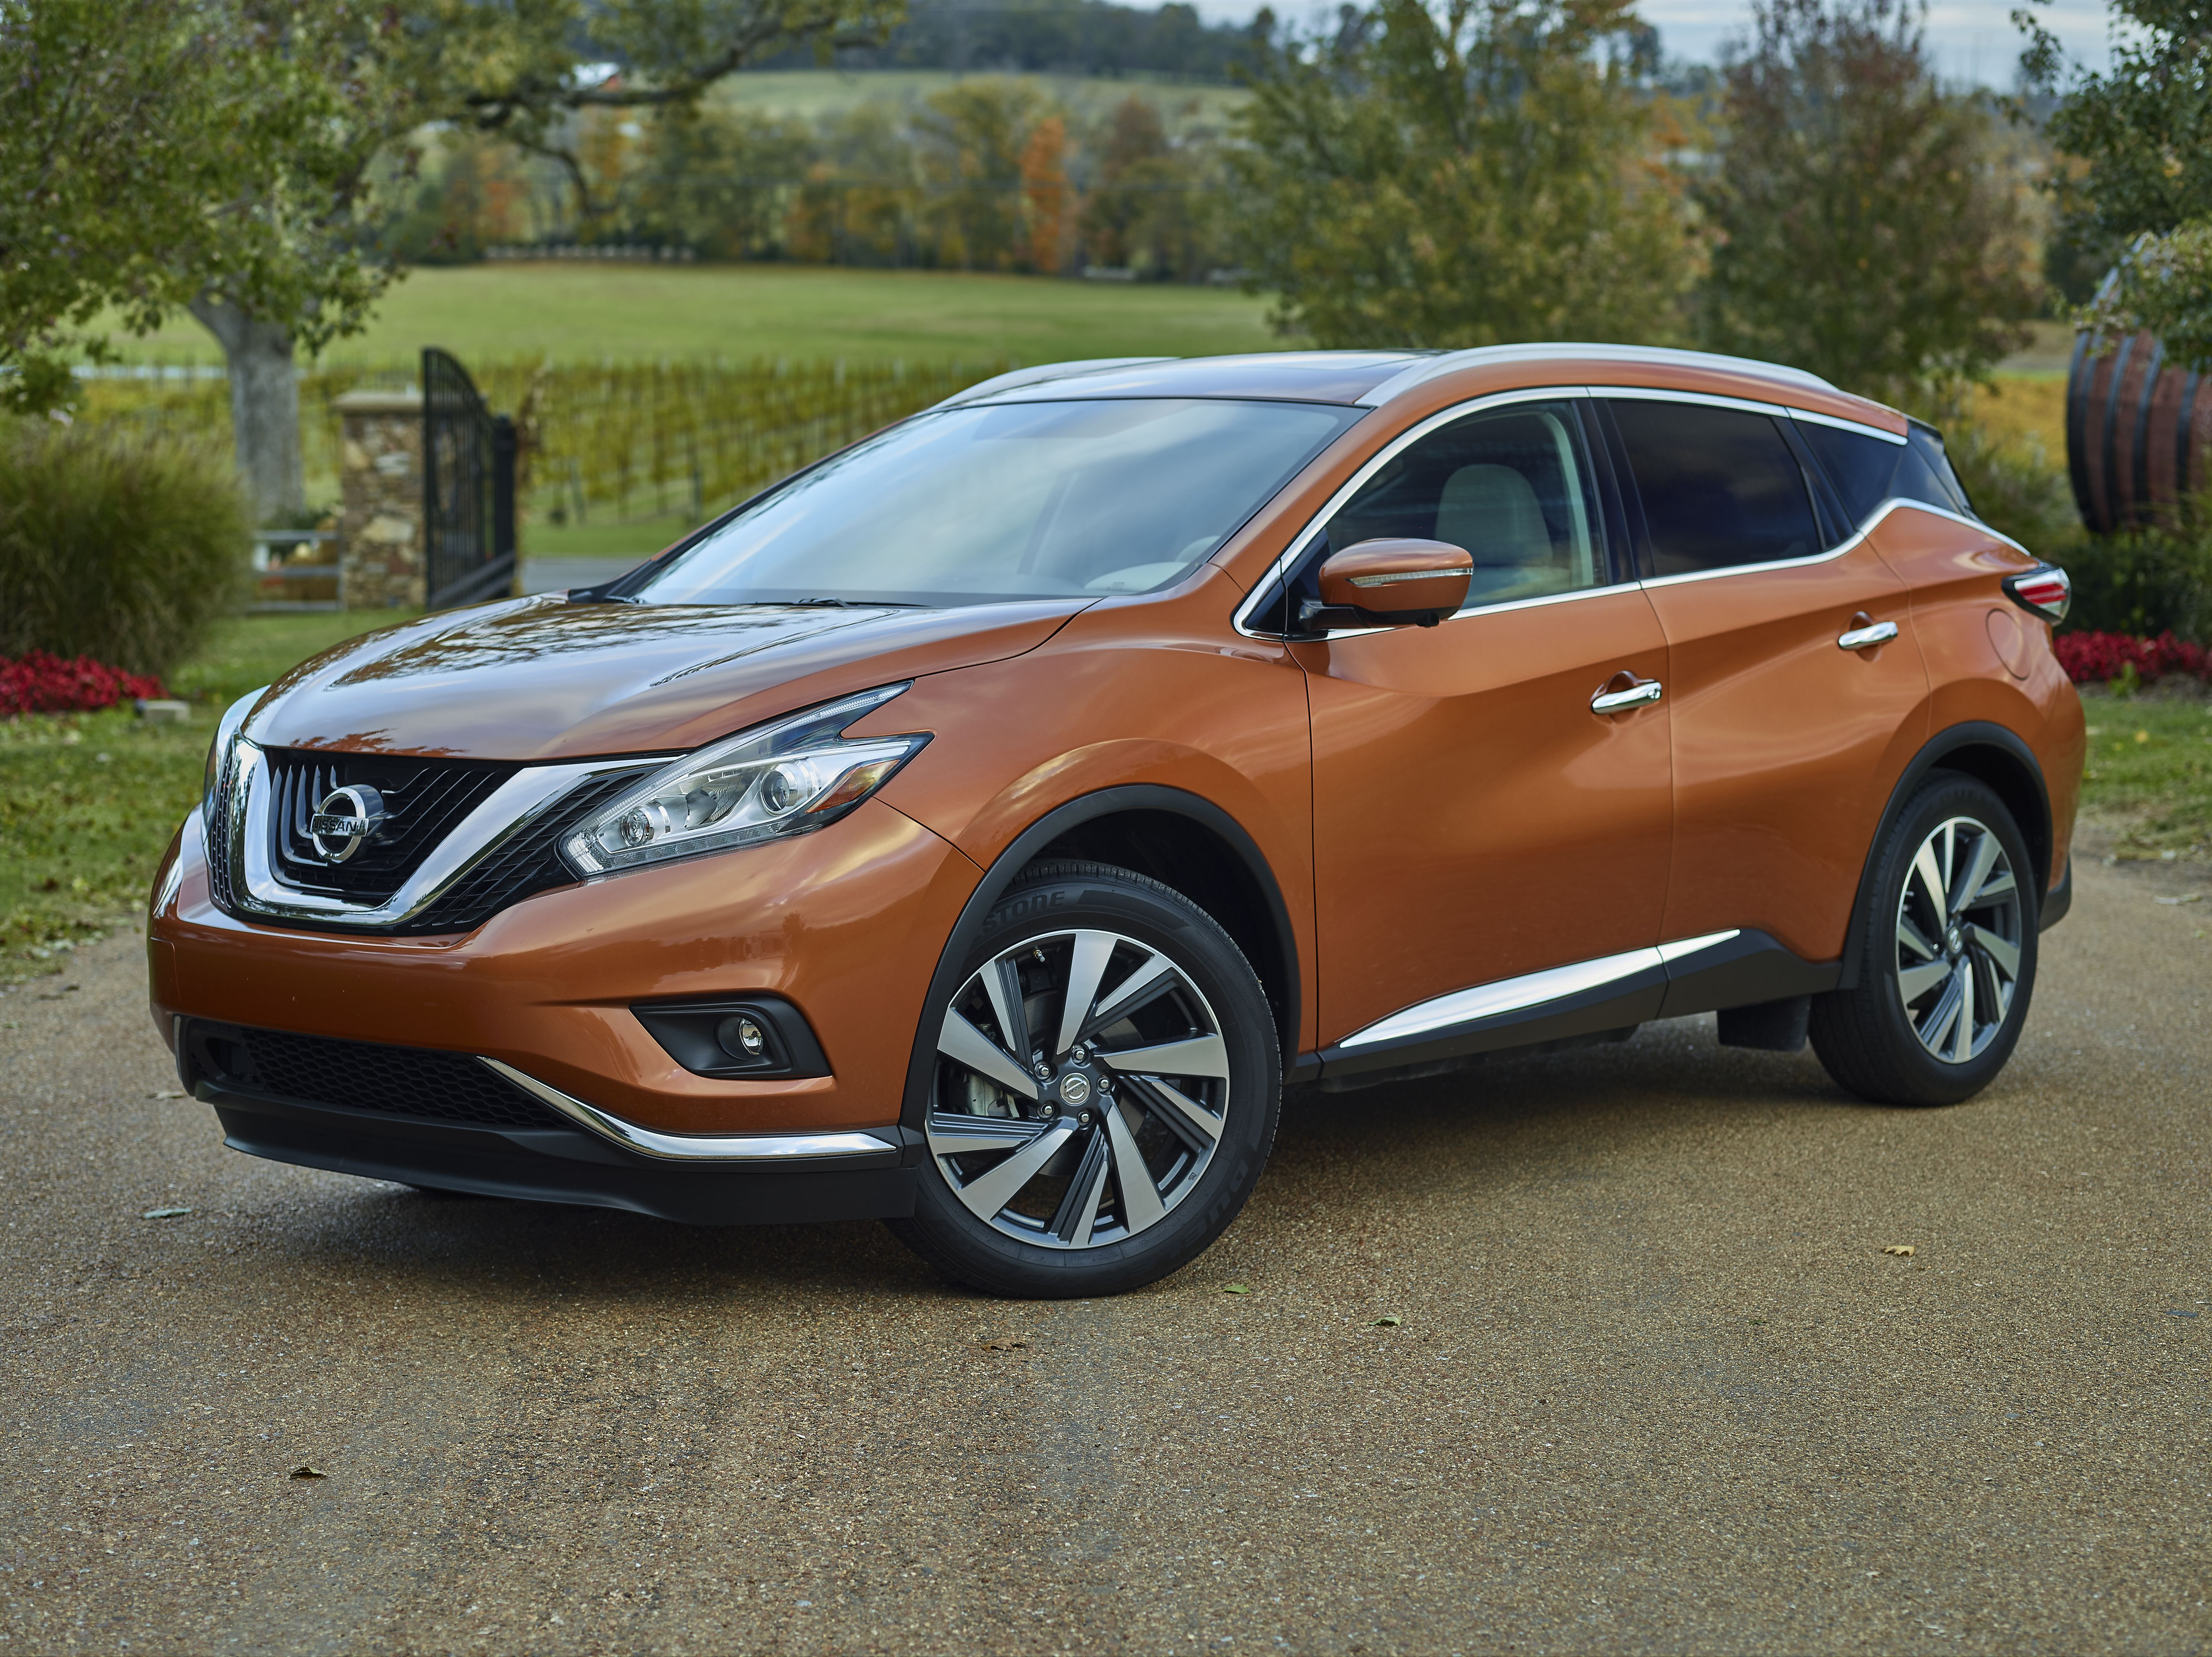 2015 nissan murano rogue select recalled for separate issues. Black Bedroom Furniture Sets. Home Design Ideas